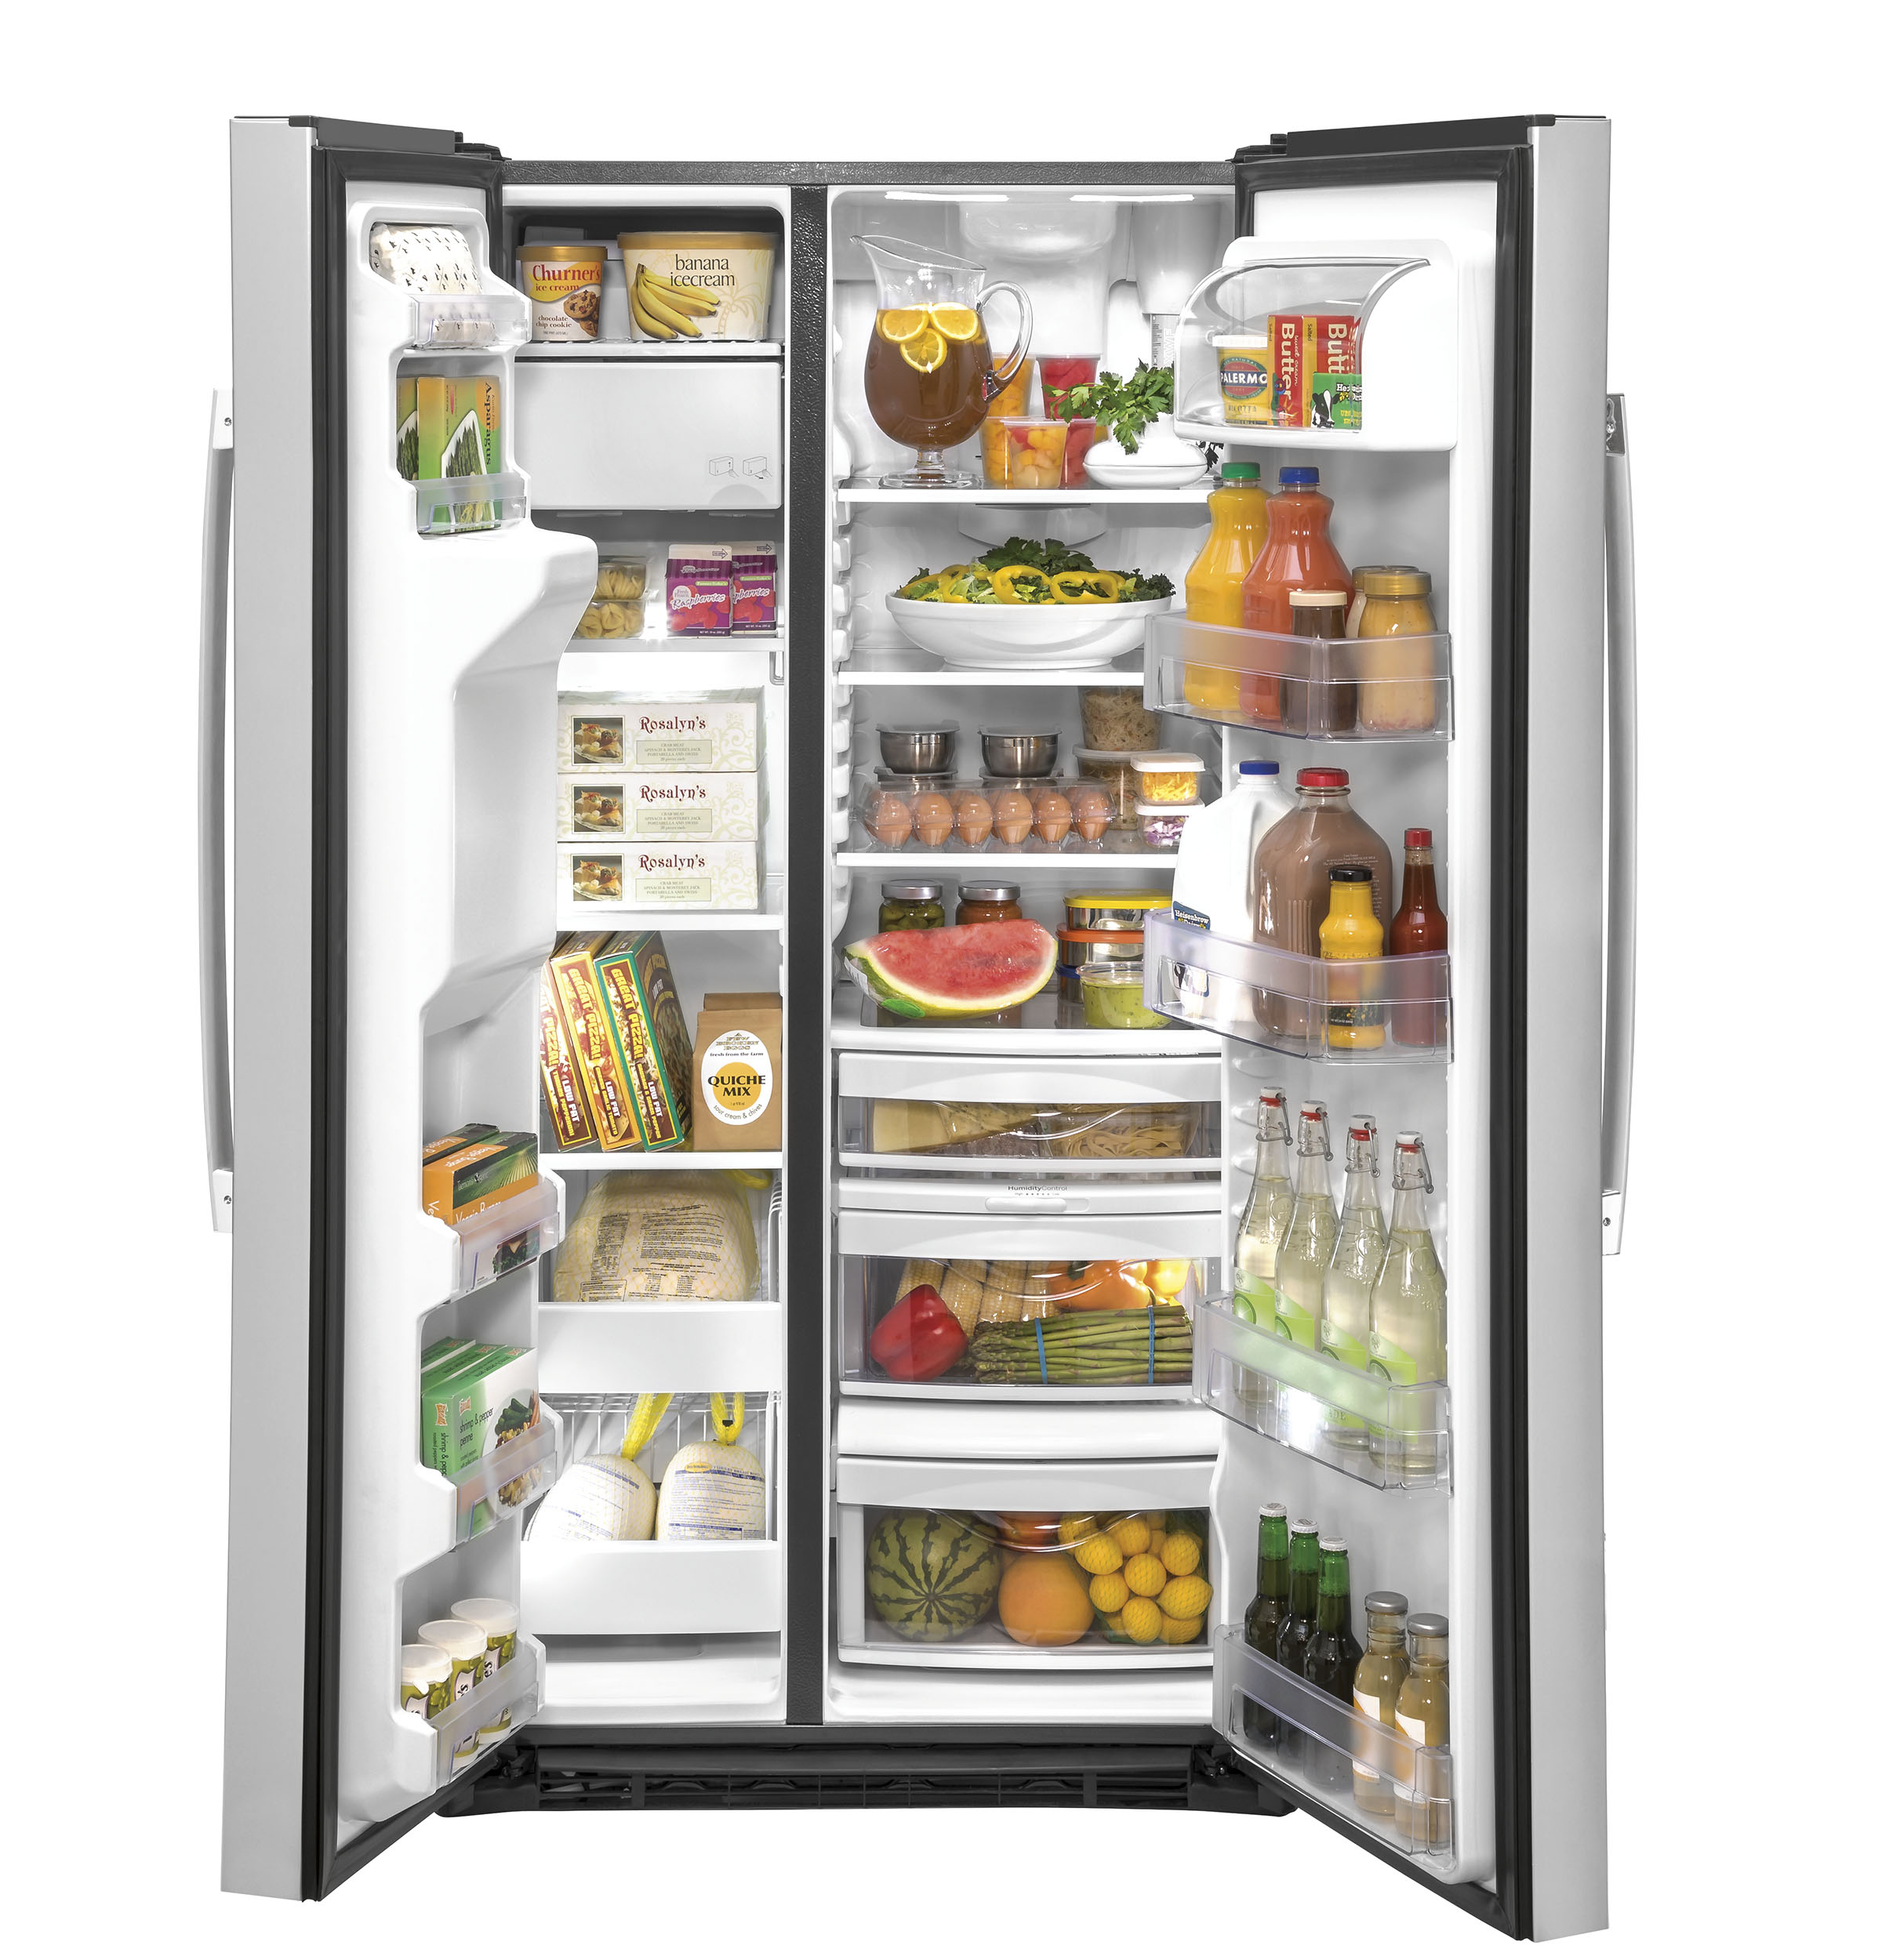 Model: GZS22IYNFS | GE GE® 21.8 Cu. Ft. Counter-Depth Fingerprint Resistant Side-By-Side Refrigerator